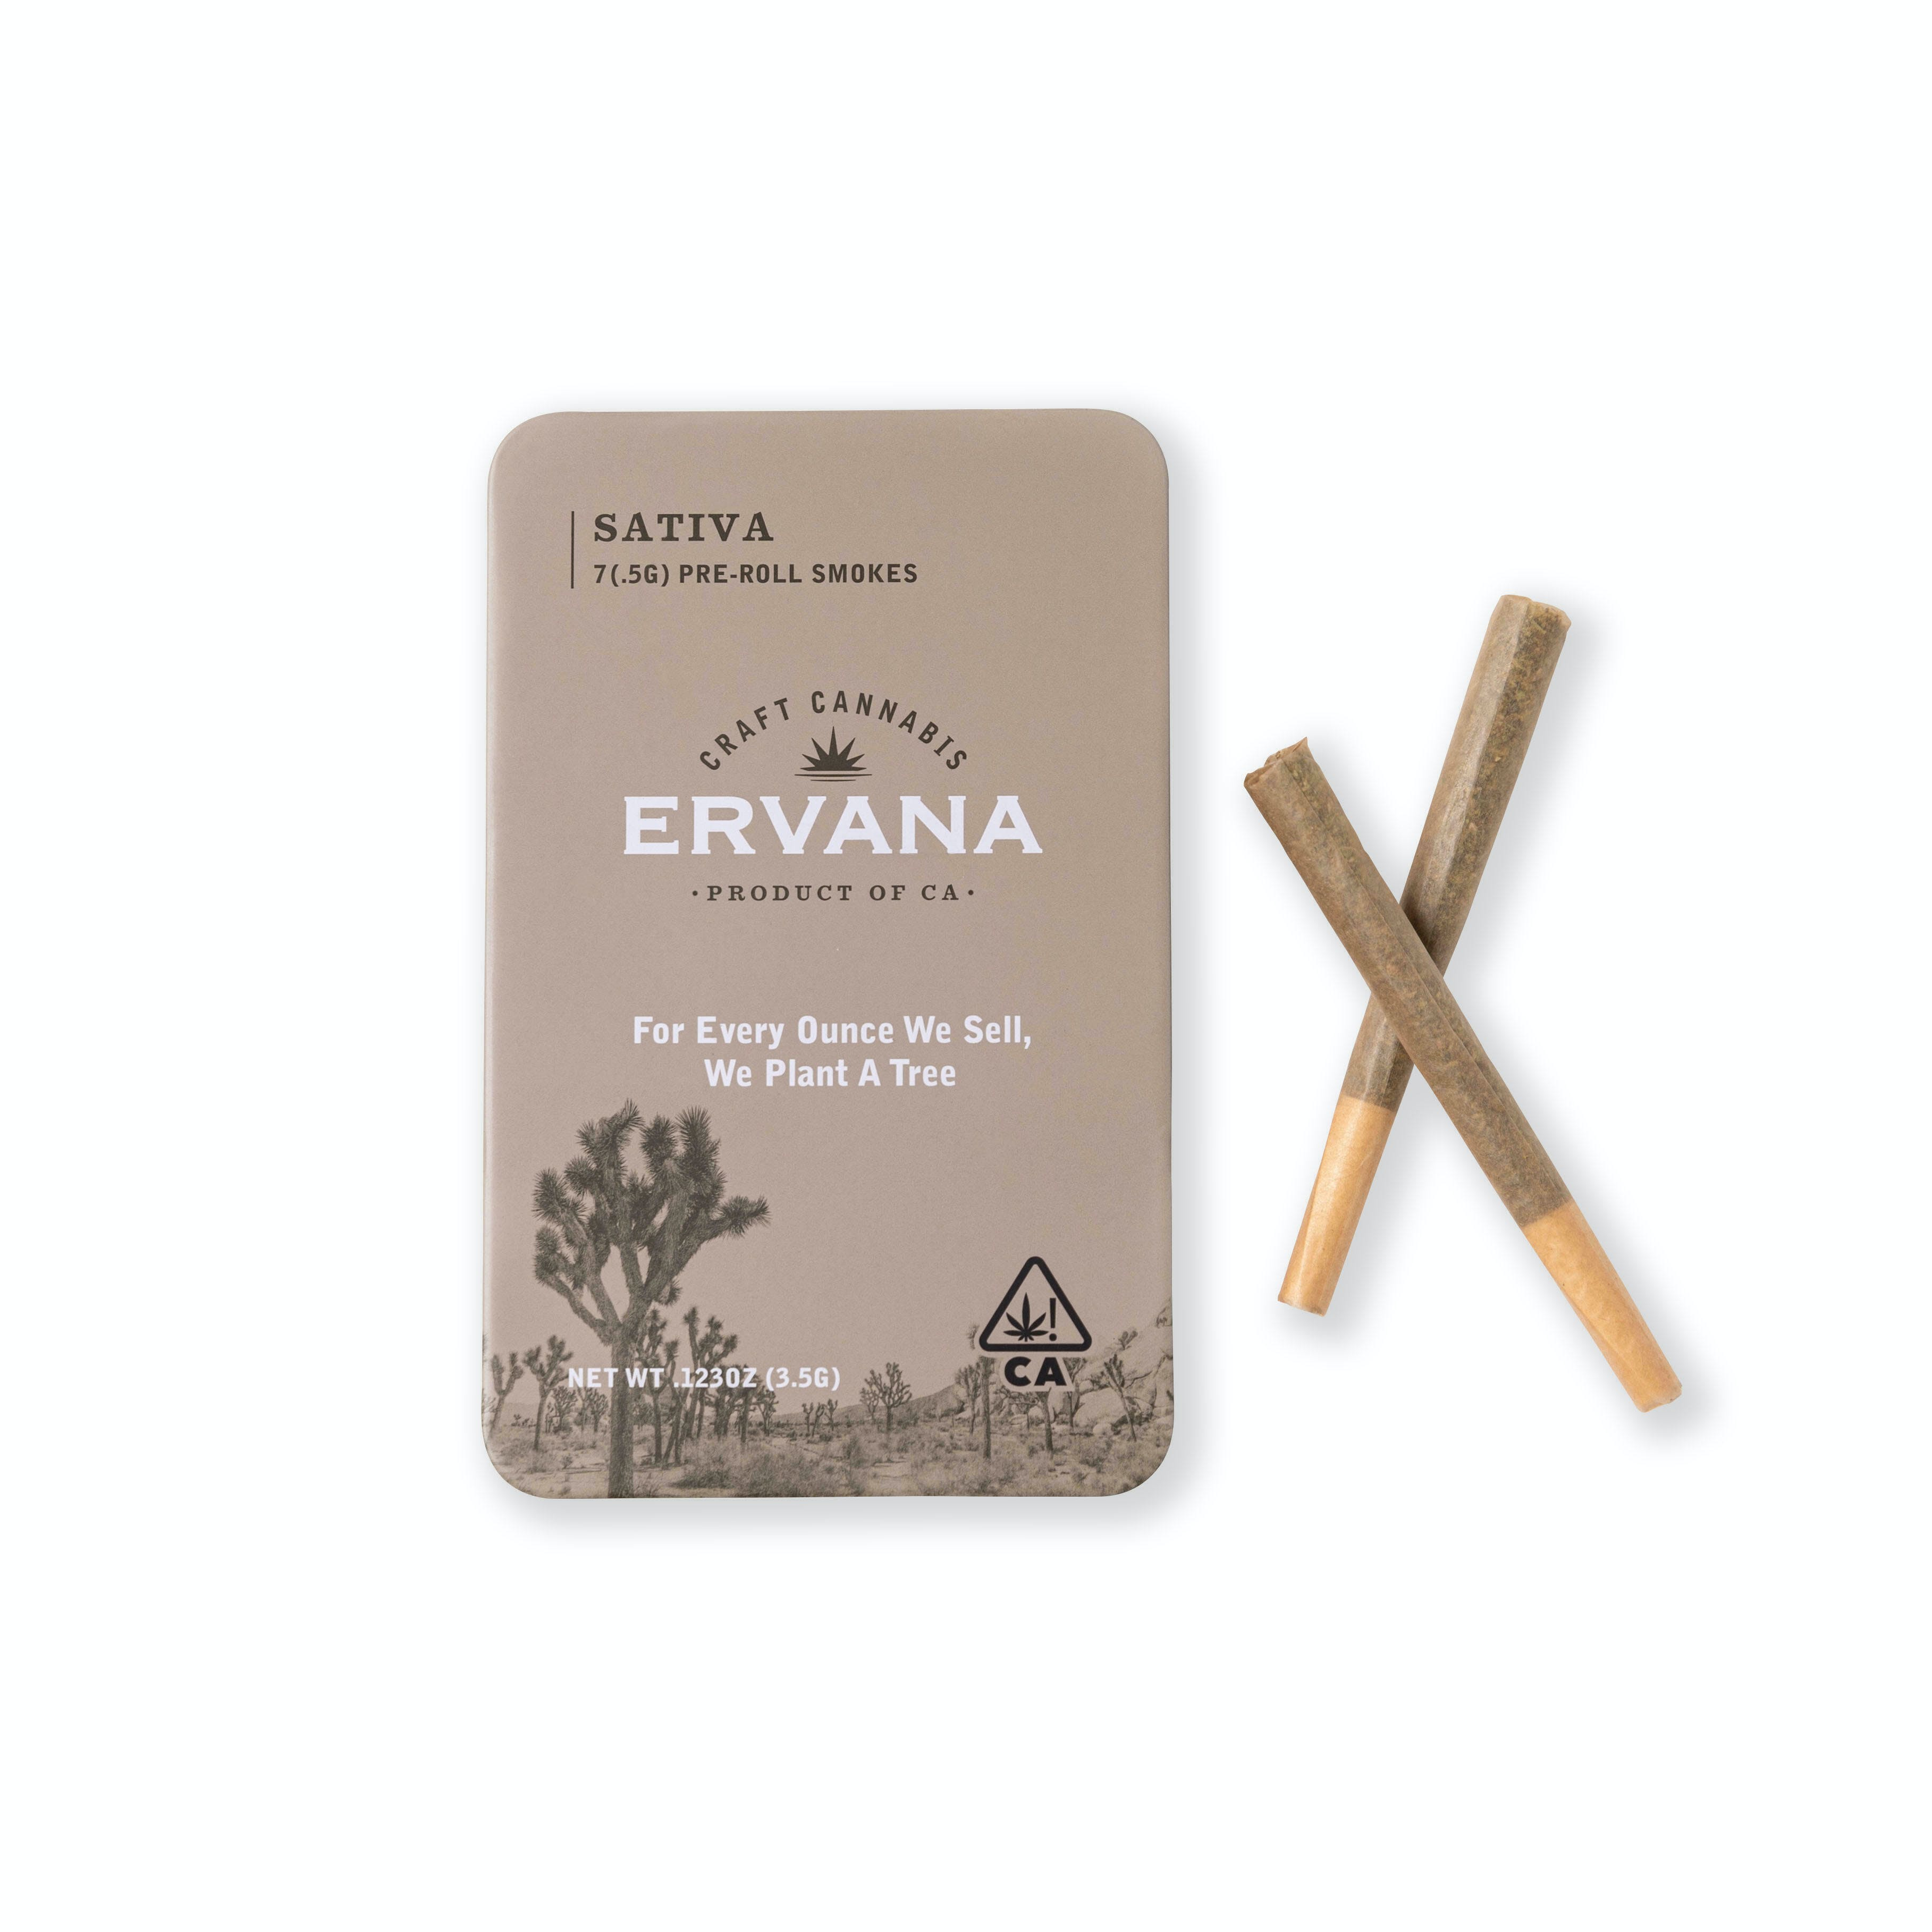 7 Pack of .5G Pre-Roll Smokes - Sativa